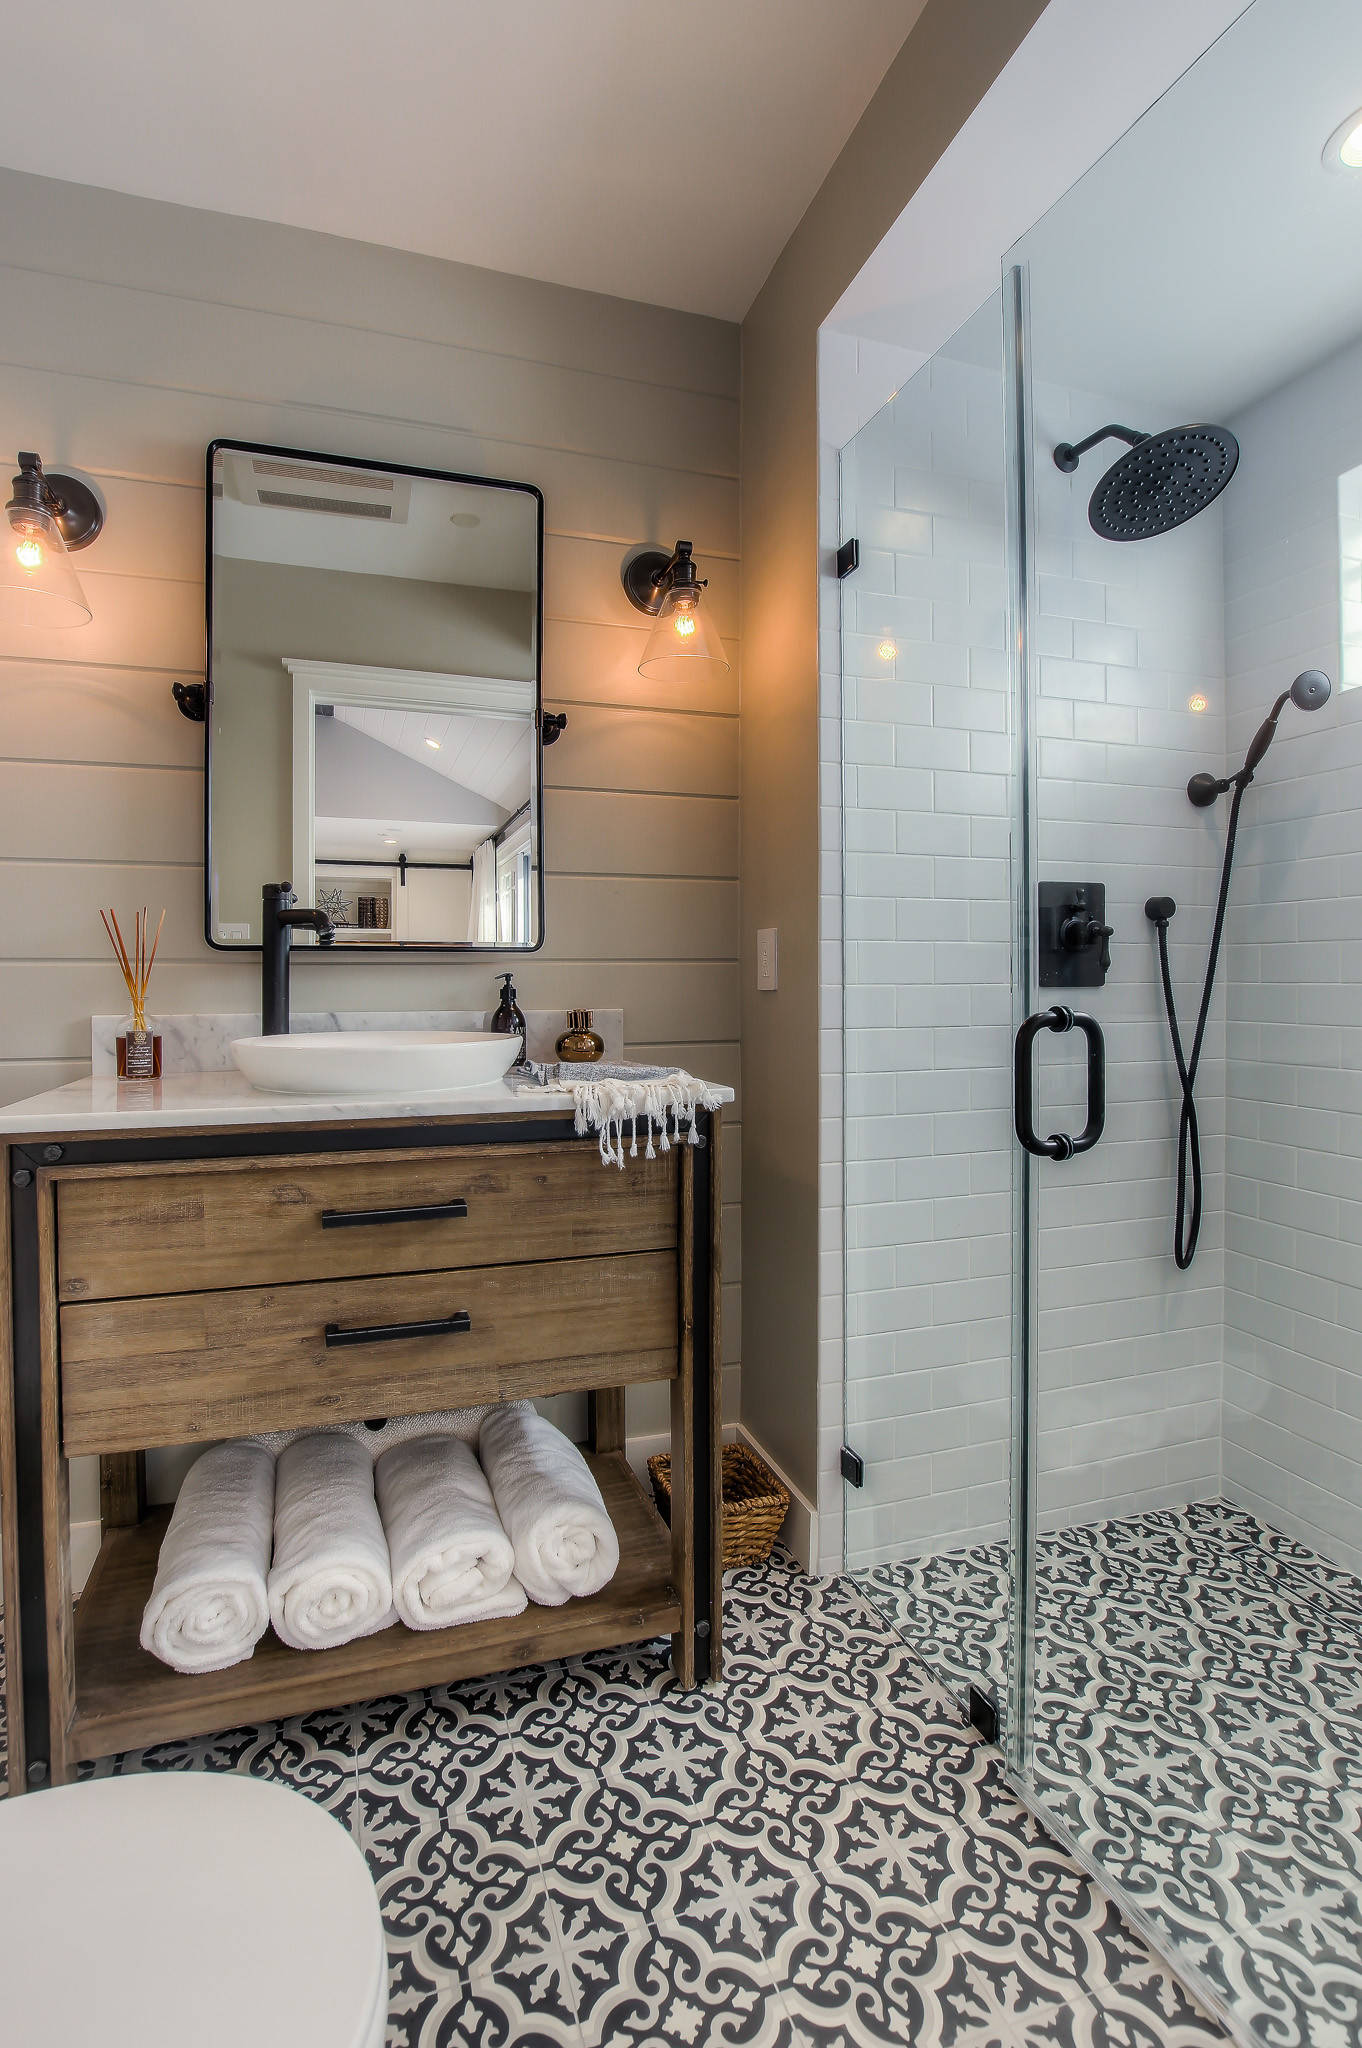 75 Beautiful Black And White Tile Bathroom Pictures Ideas January 2021 Houzz